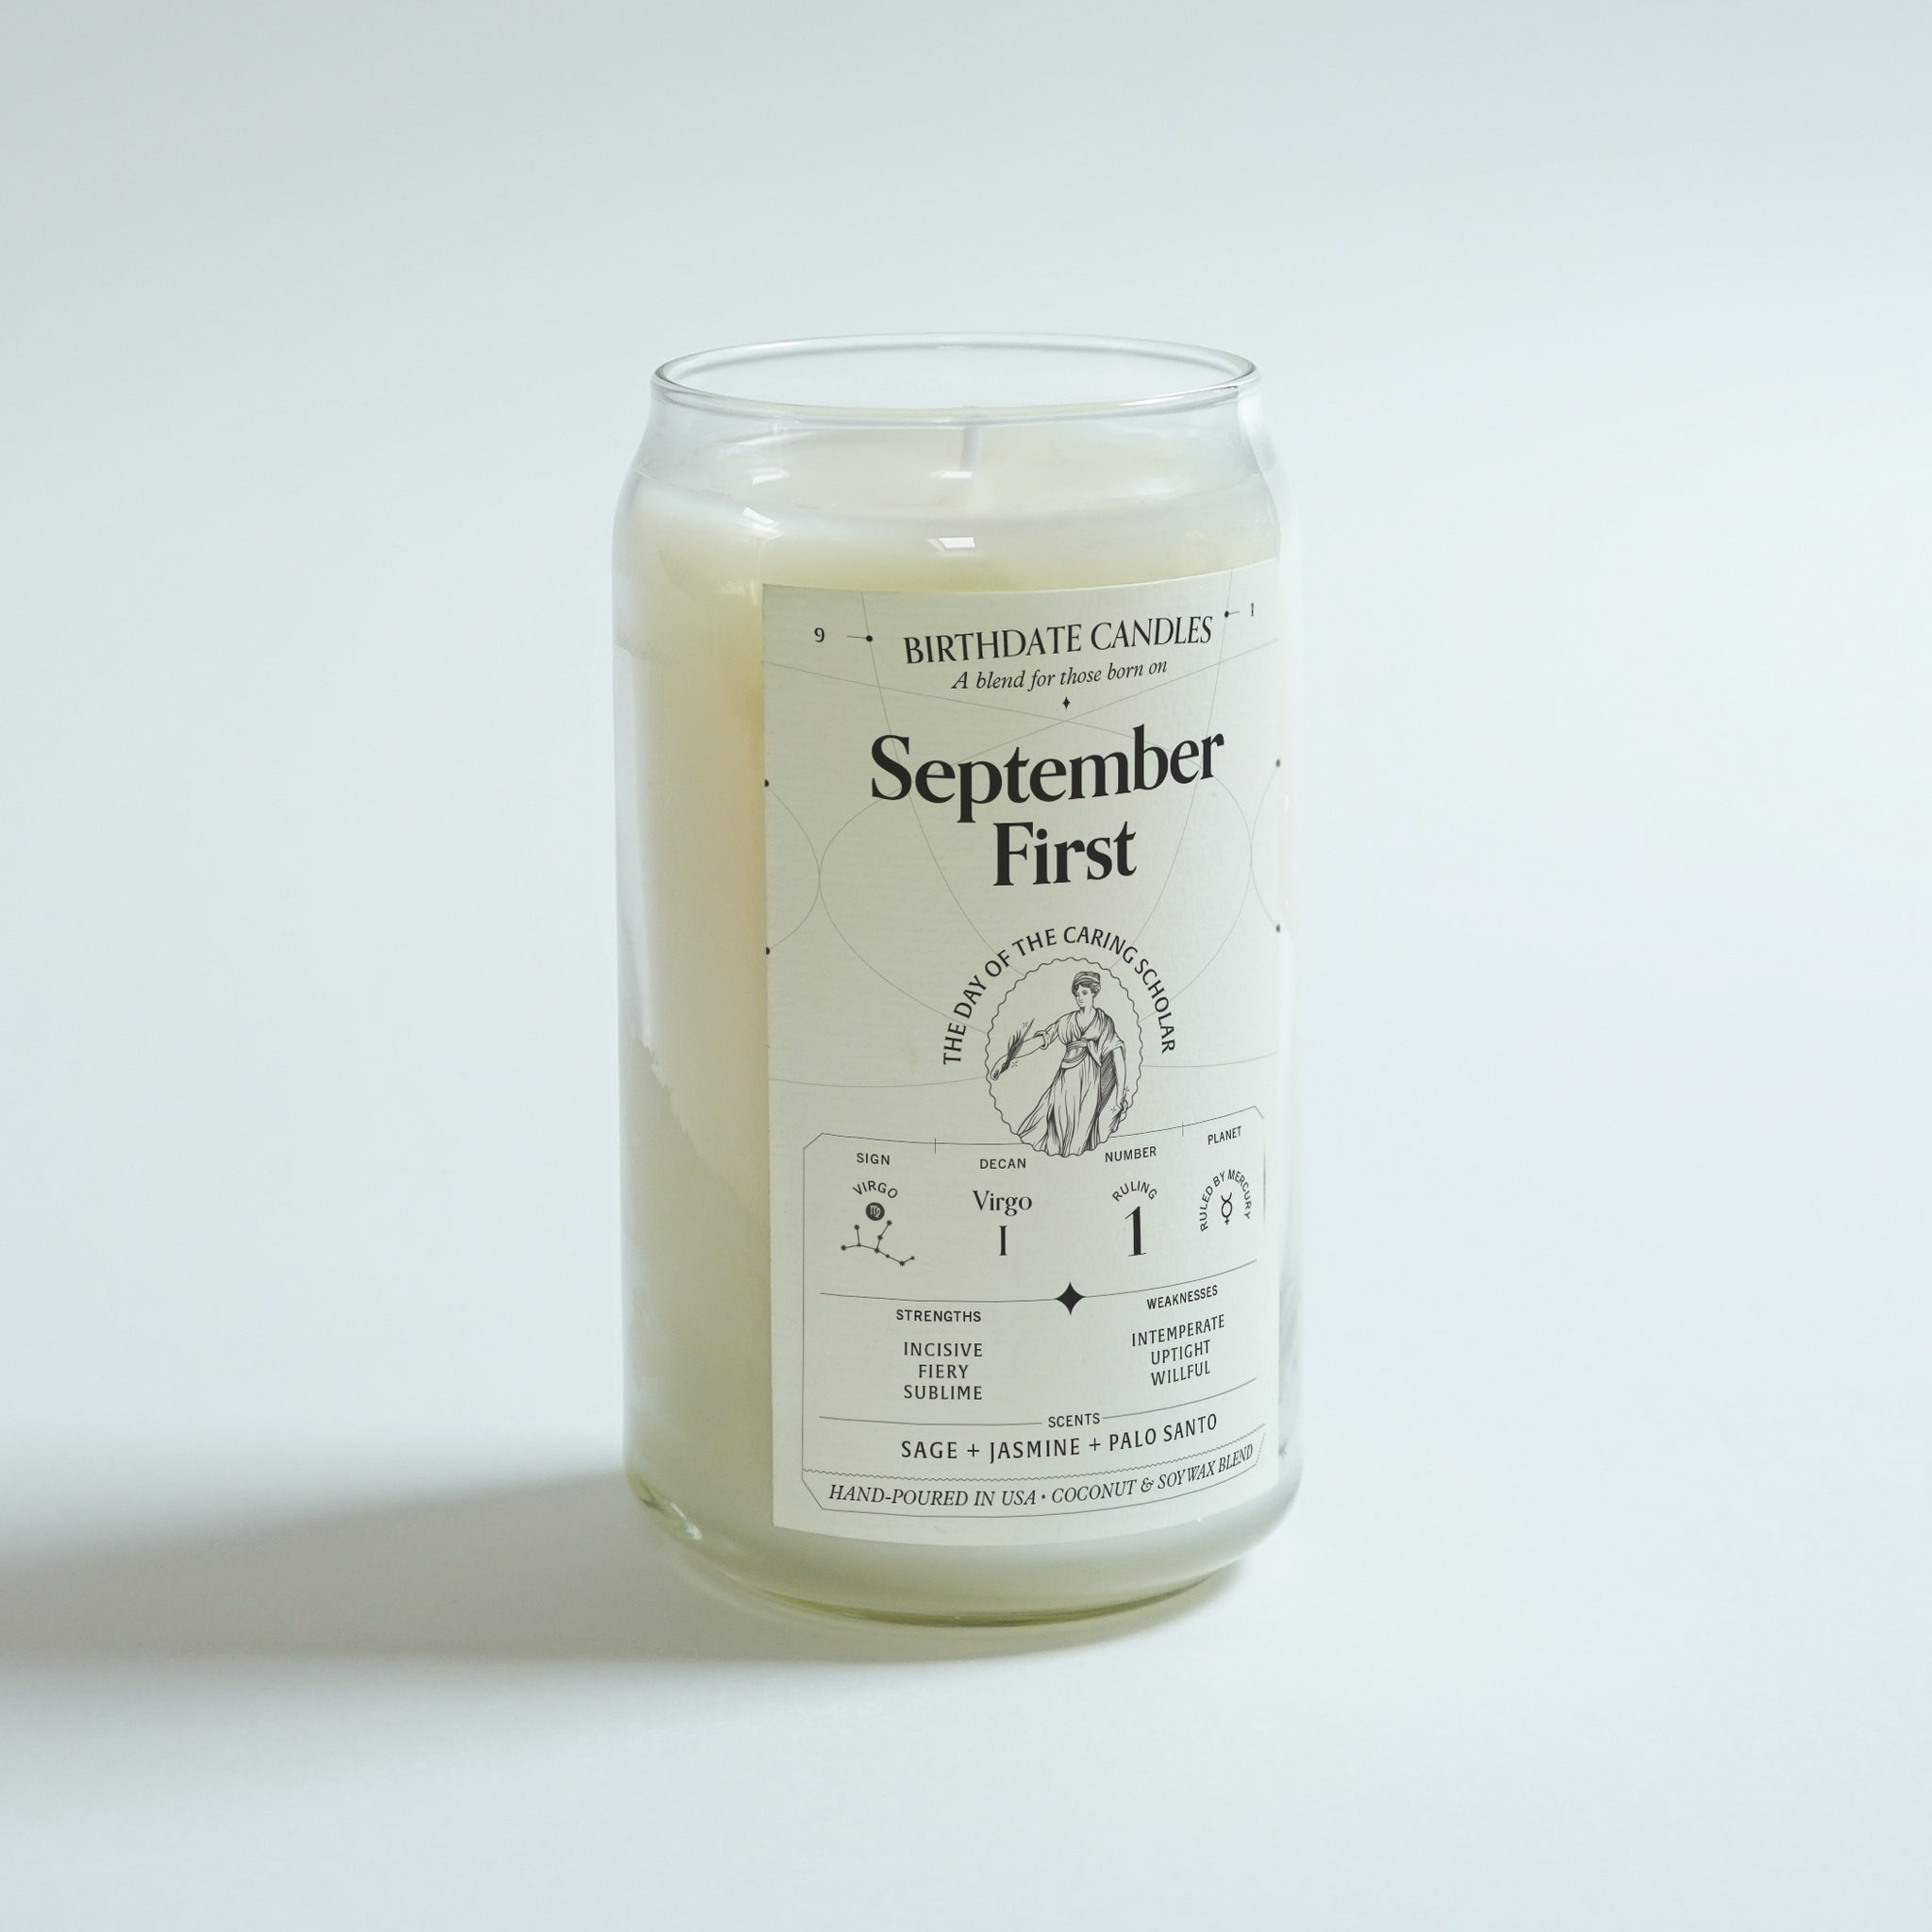 The September First Candle